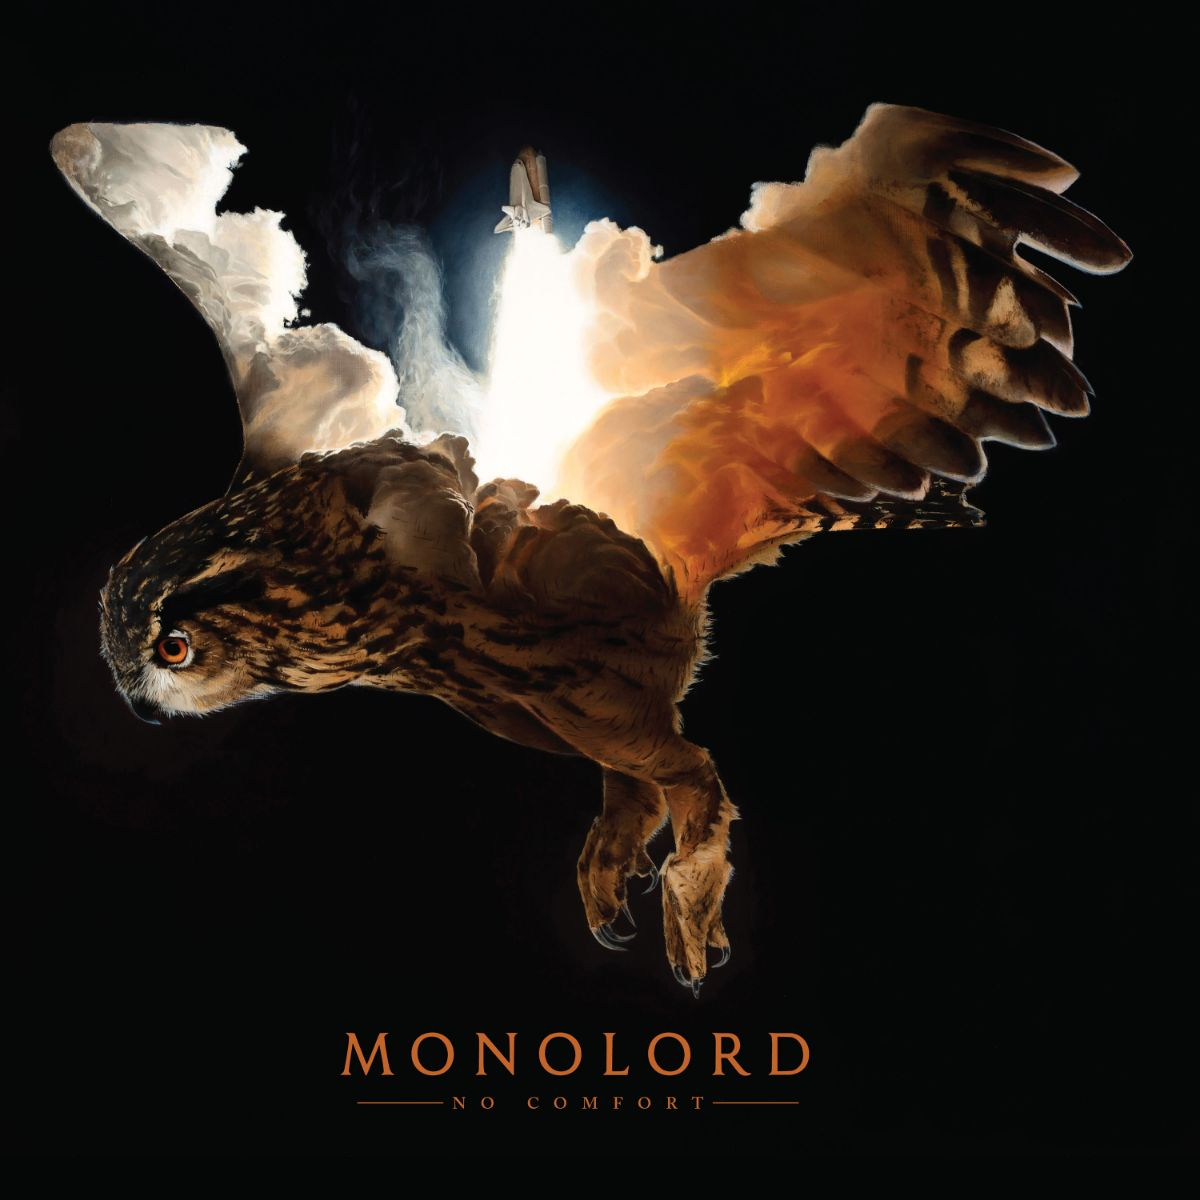 monolord no comfort - TOP